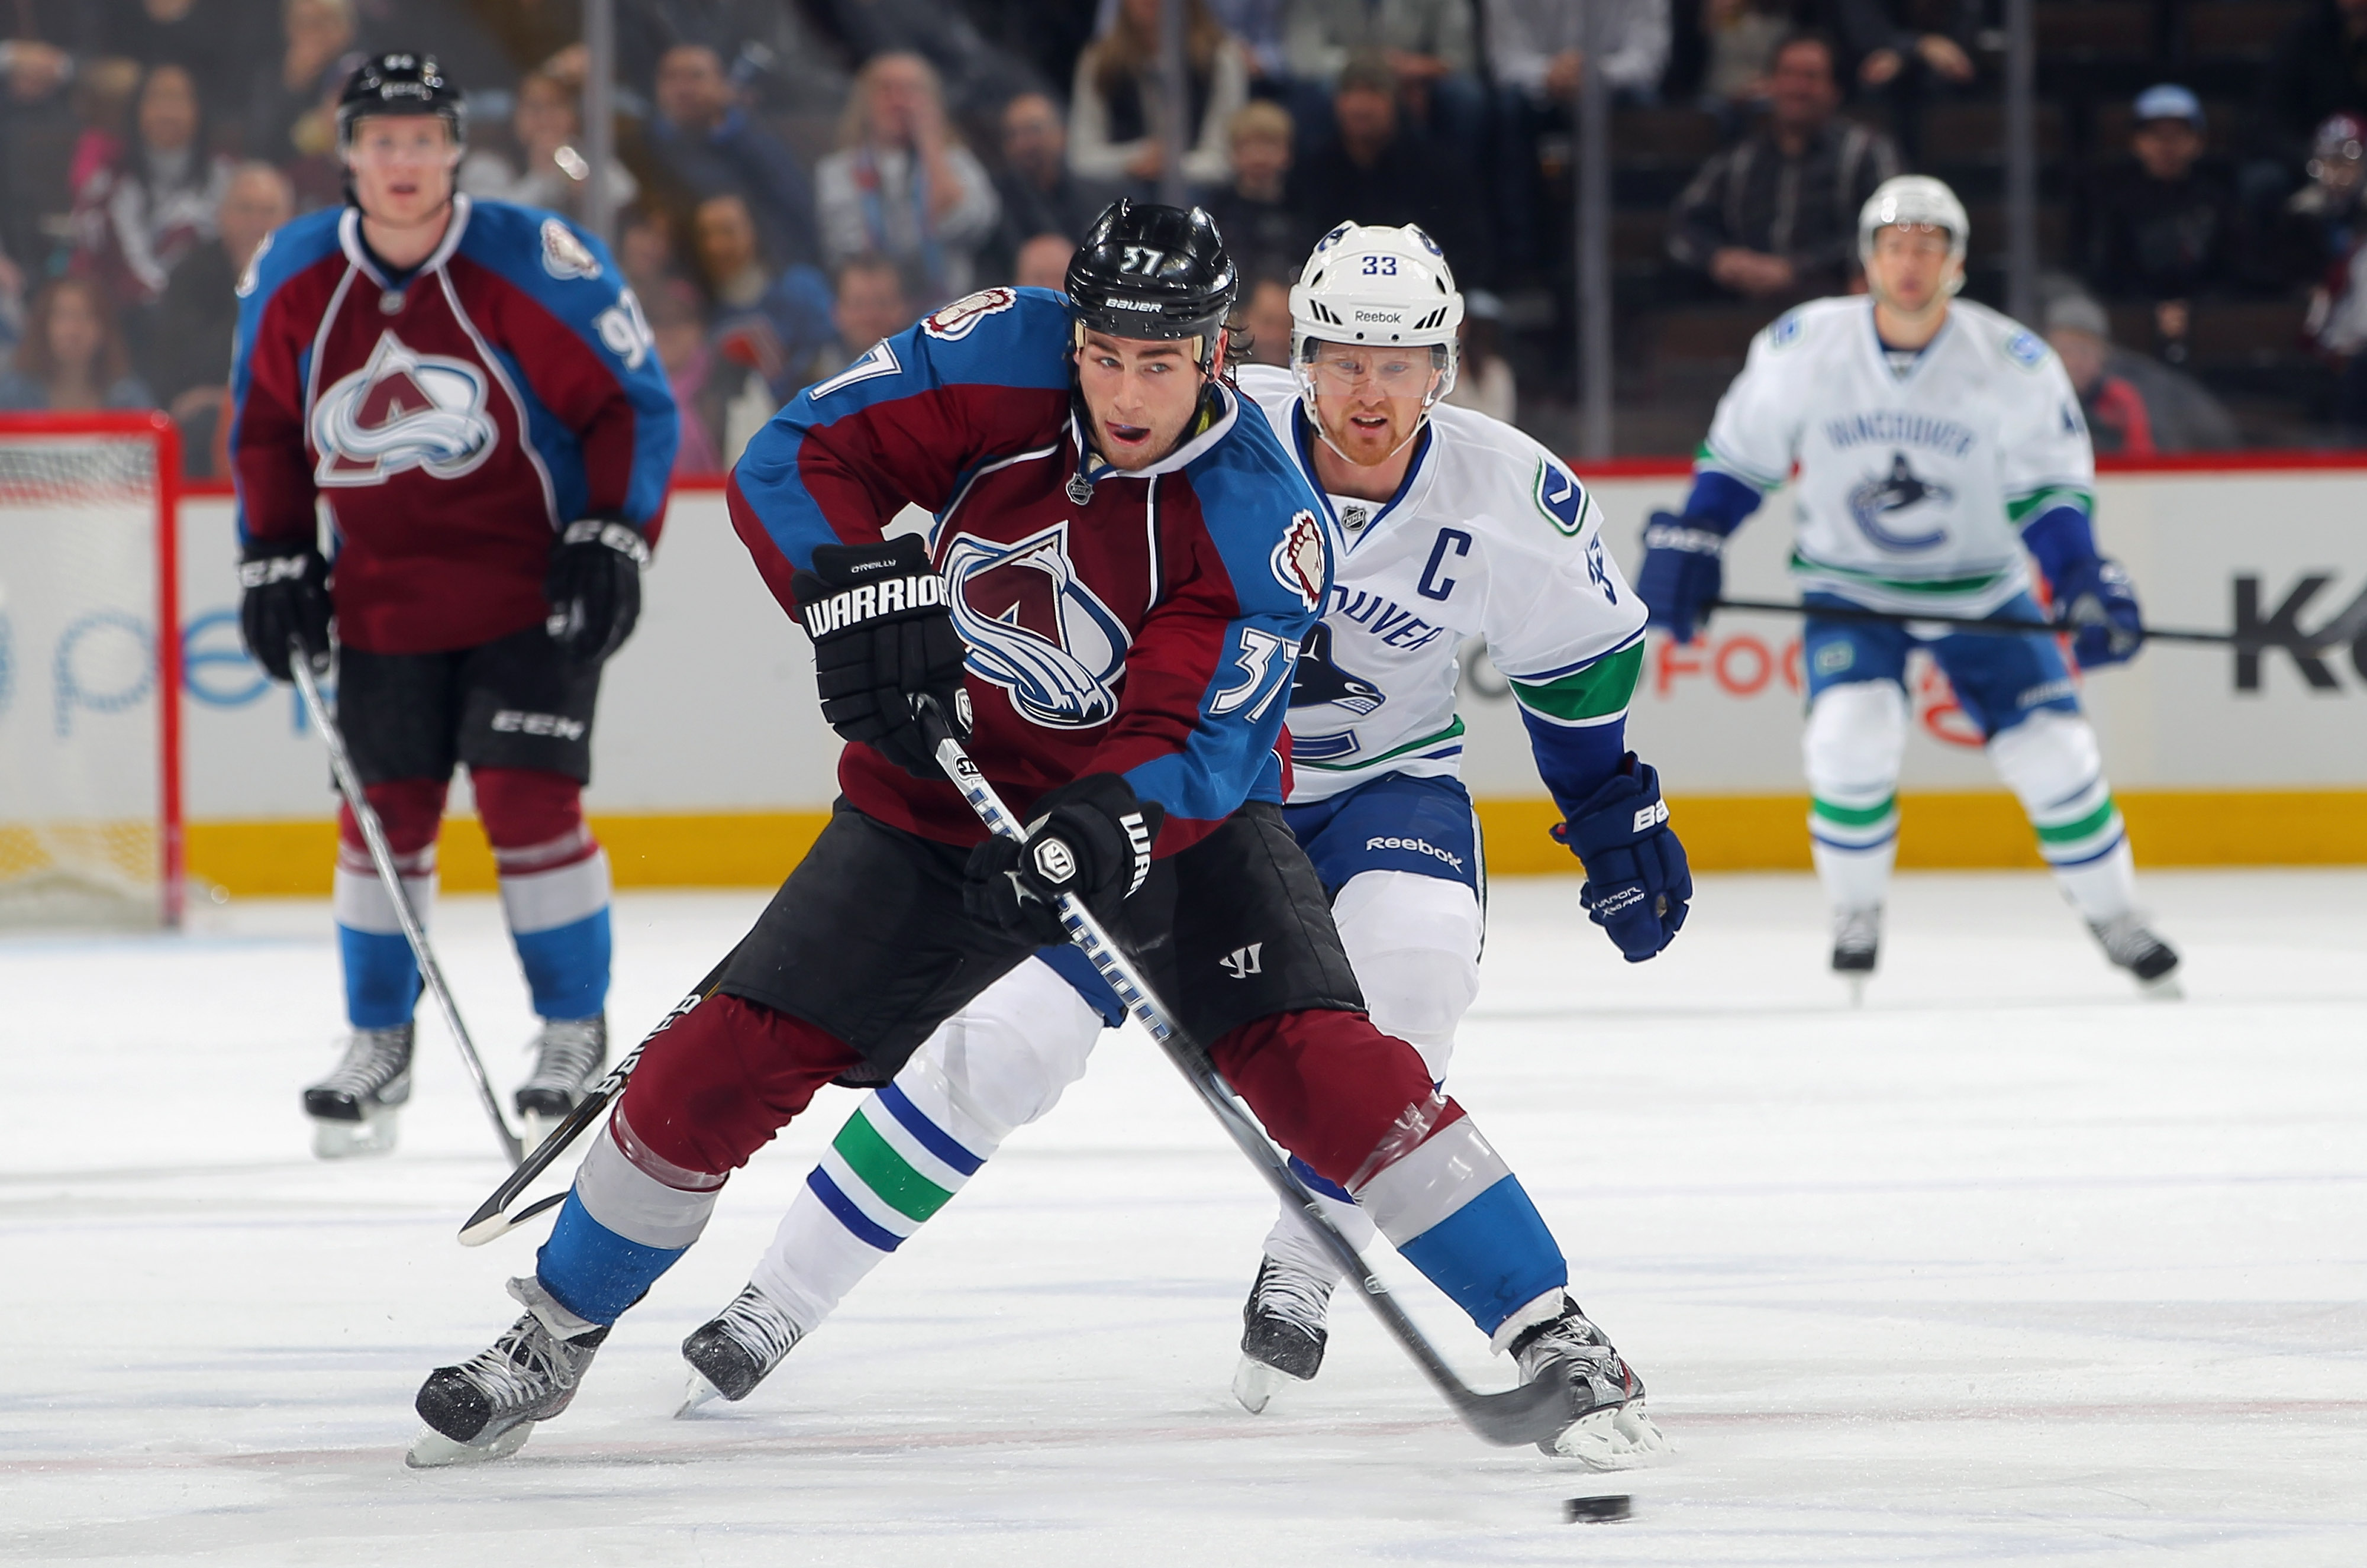 Ryan O'Reilly wants to be a go-to guy in all situations for the Avs. (Getty Images)